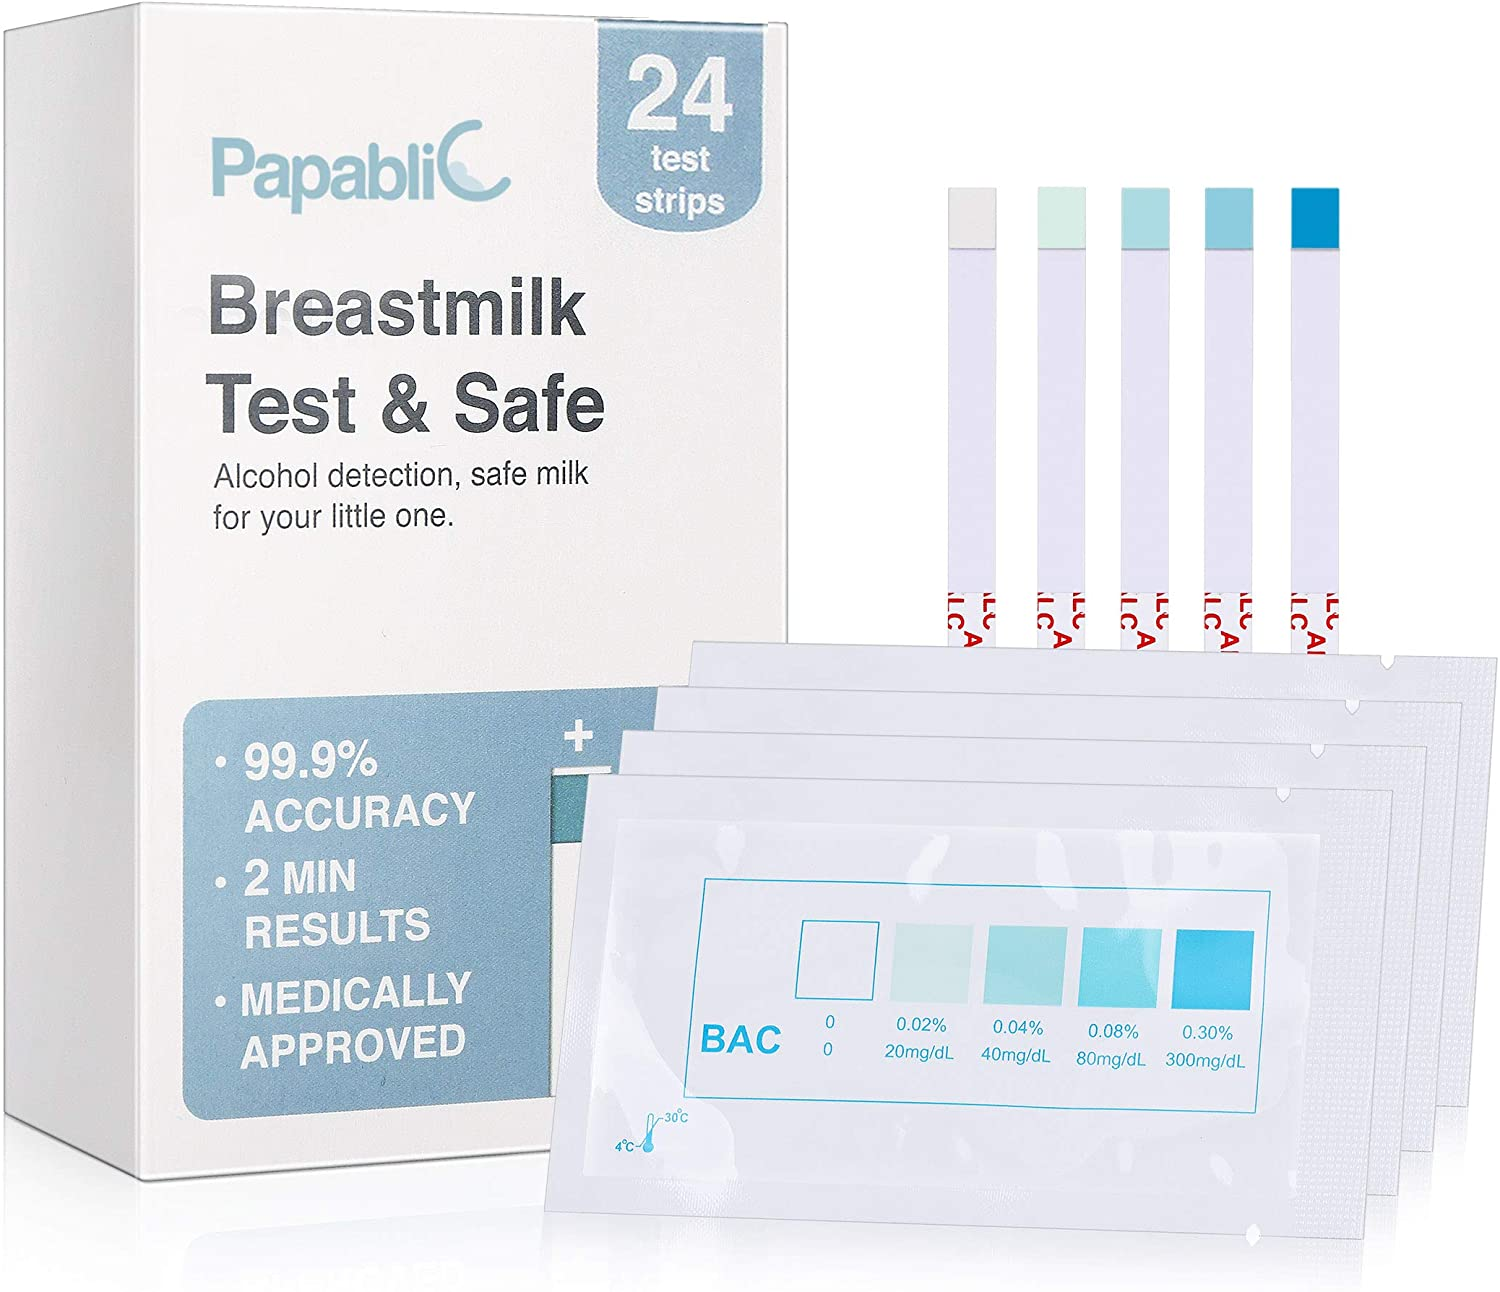 [24Count] Papablic Test & Safe Breastmilk Alcohol Test Strips, 2-min Quick & Precise Detection for Alcohol in Breastmilk, White